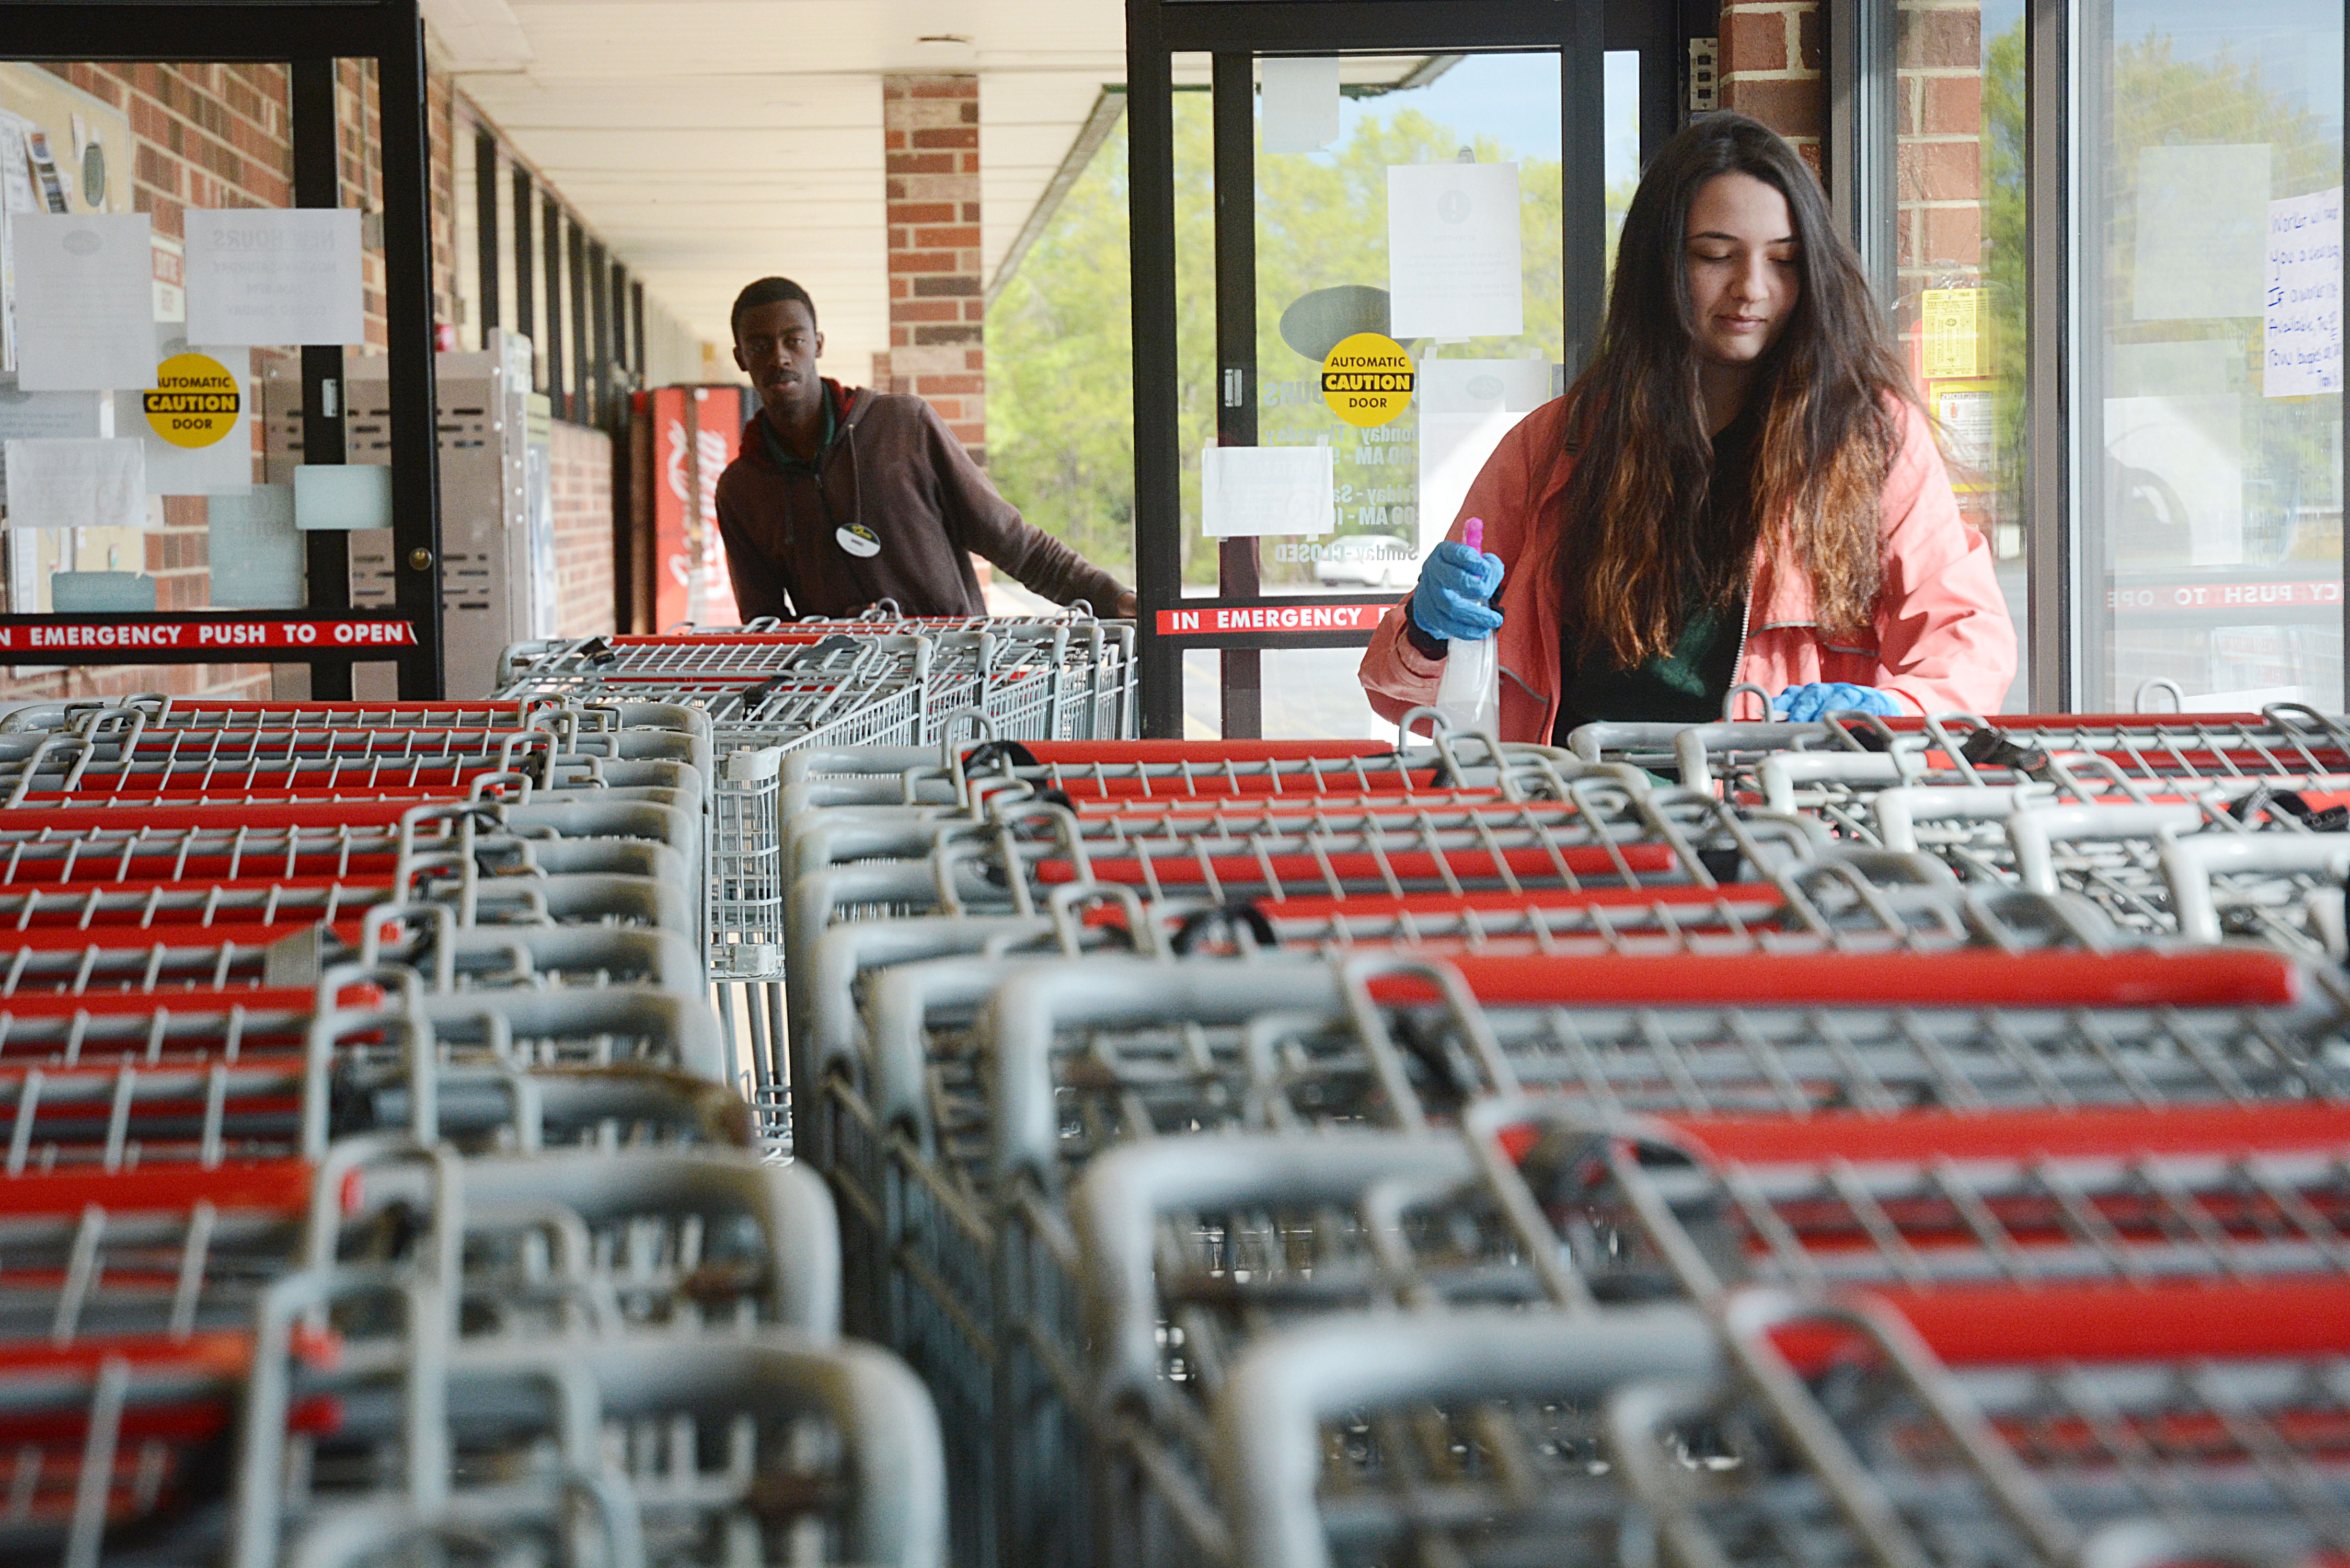 Sunshot by Michael Hall -- Darius Hunt, left, brings in carts from the parking lot at Quality Foods in Hartwell on Tuesday, March 31, as Kelsie Dean, right, cleans them to disinfect them as part of the store's response to the COVID-19 pandemic.